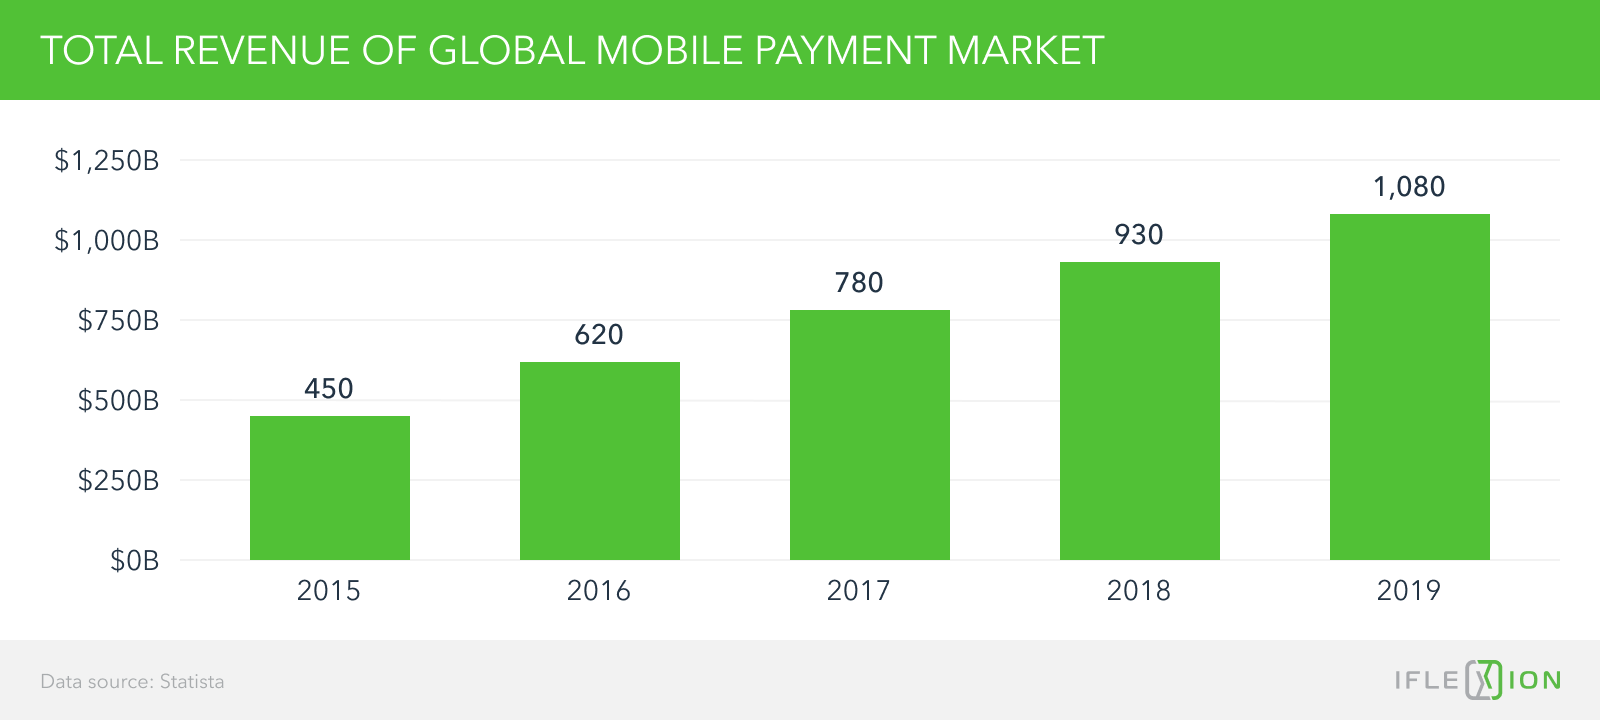 Total revenue of global mobile payment market